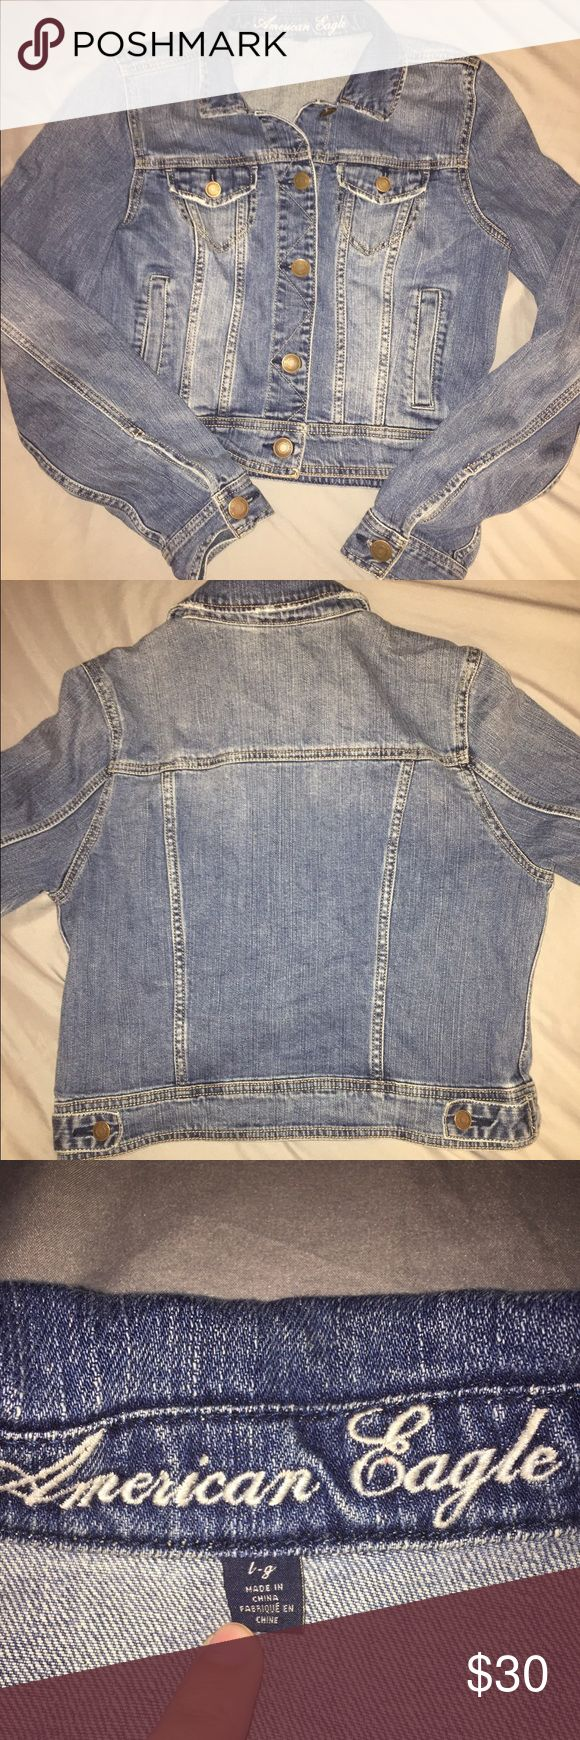 Denim AE Jacket Denim America Eagle jacket. Perfect for layering or dressing down an outfit. Some wear but still in great condition. American Eagle Outfitters Jackets & Coats Jean Jackets